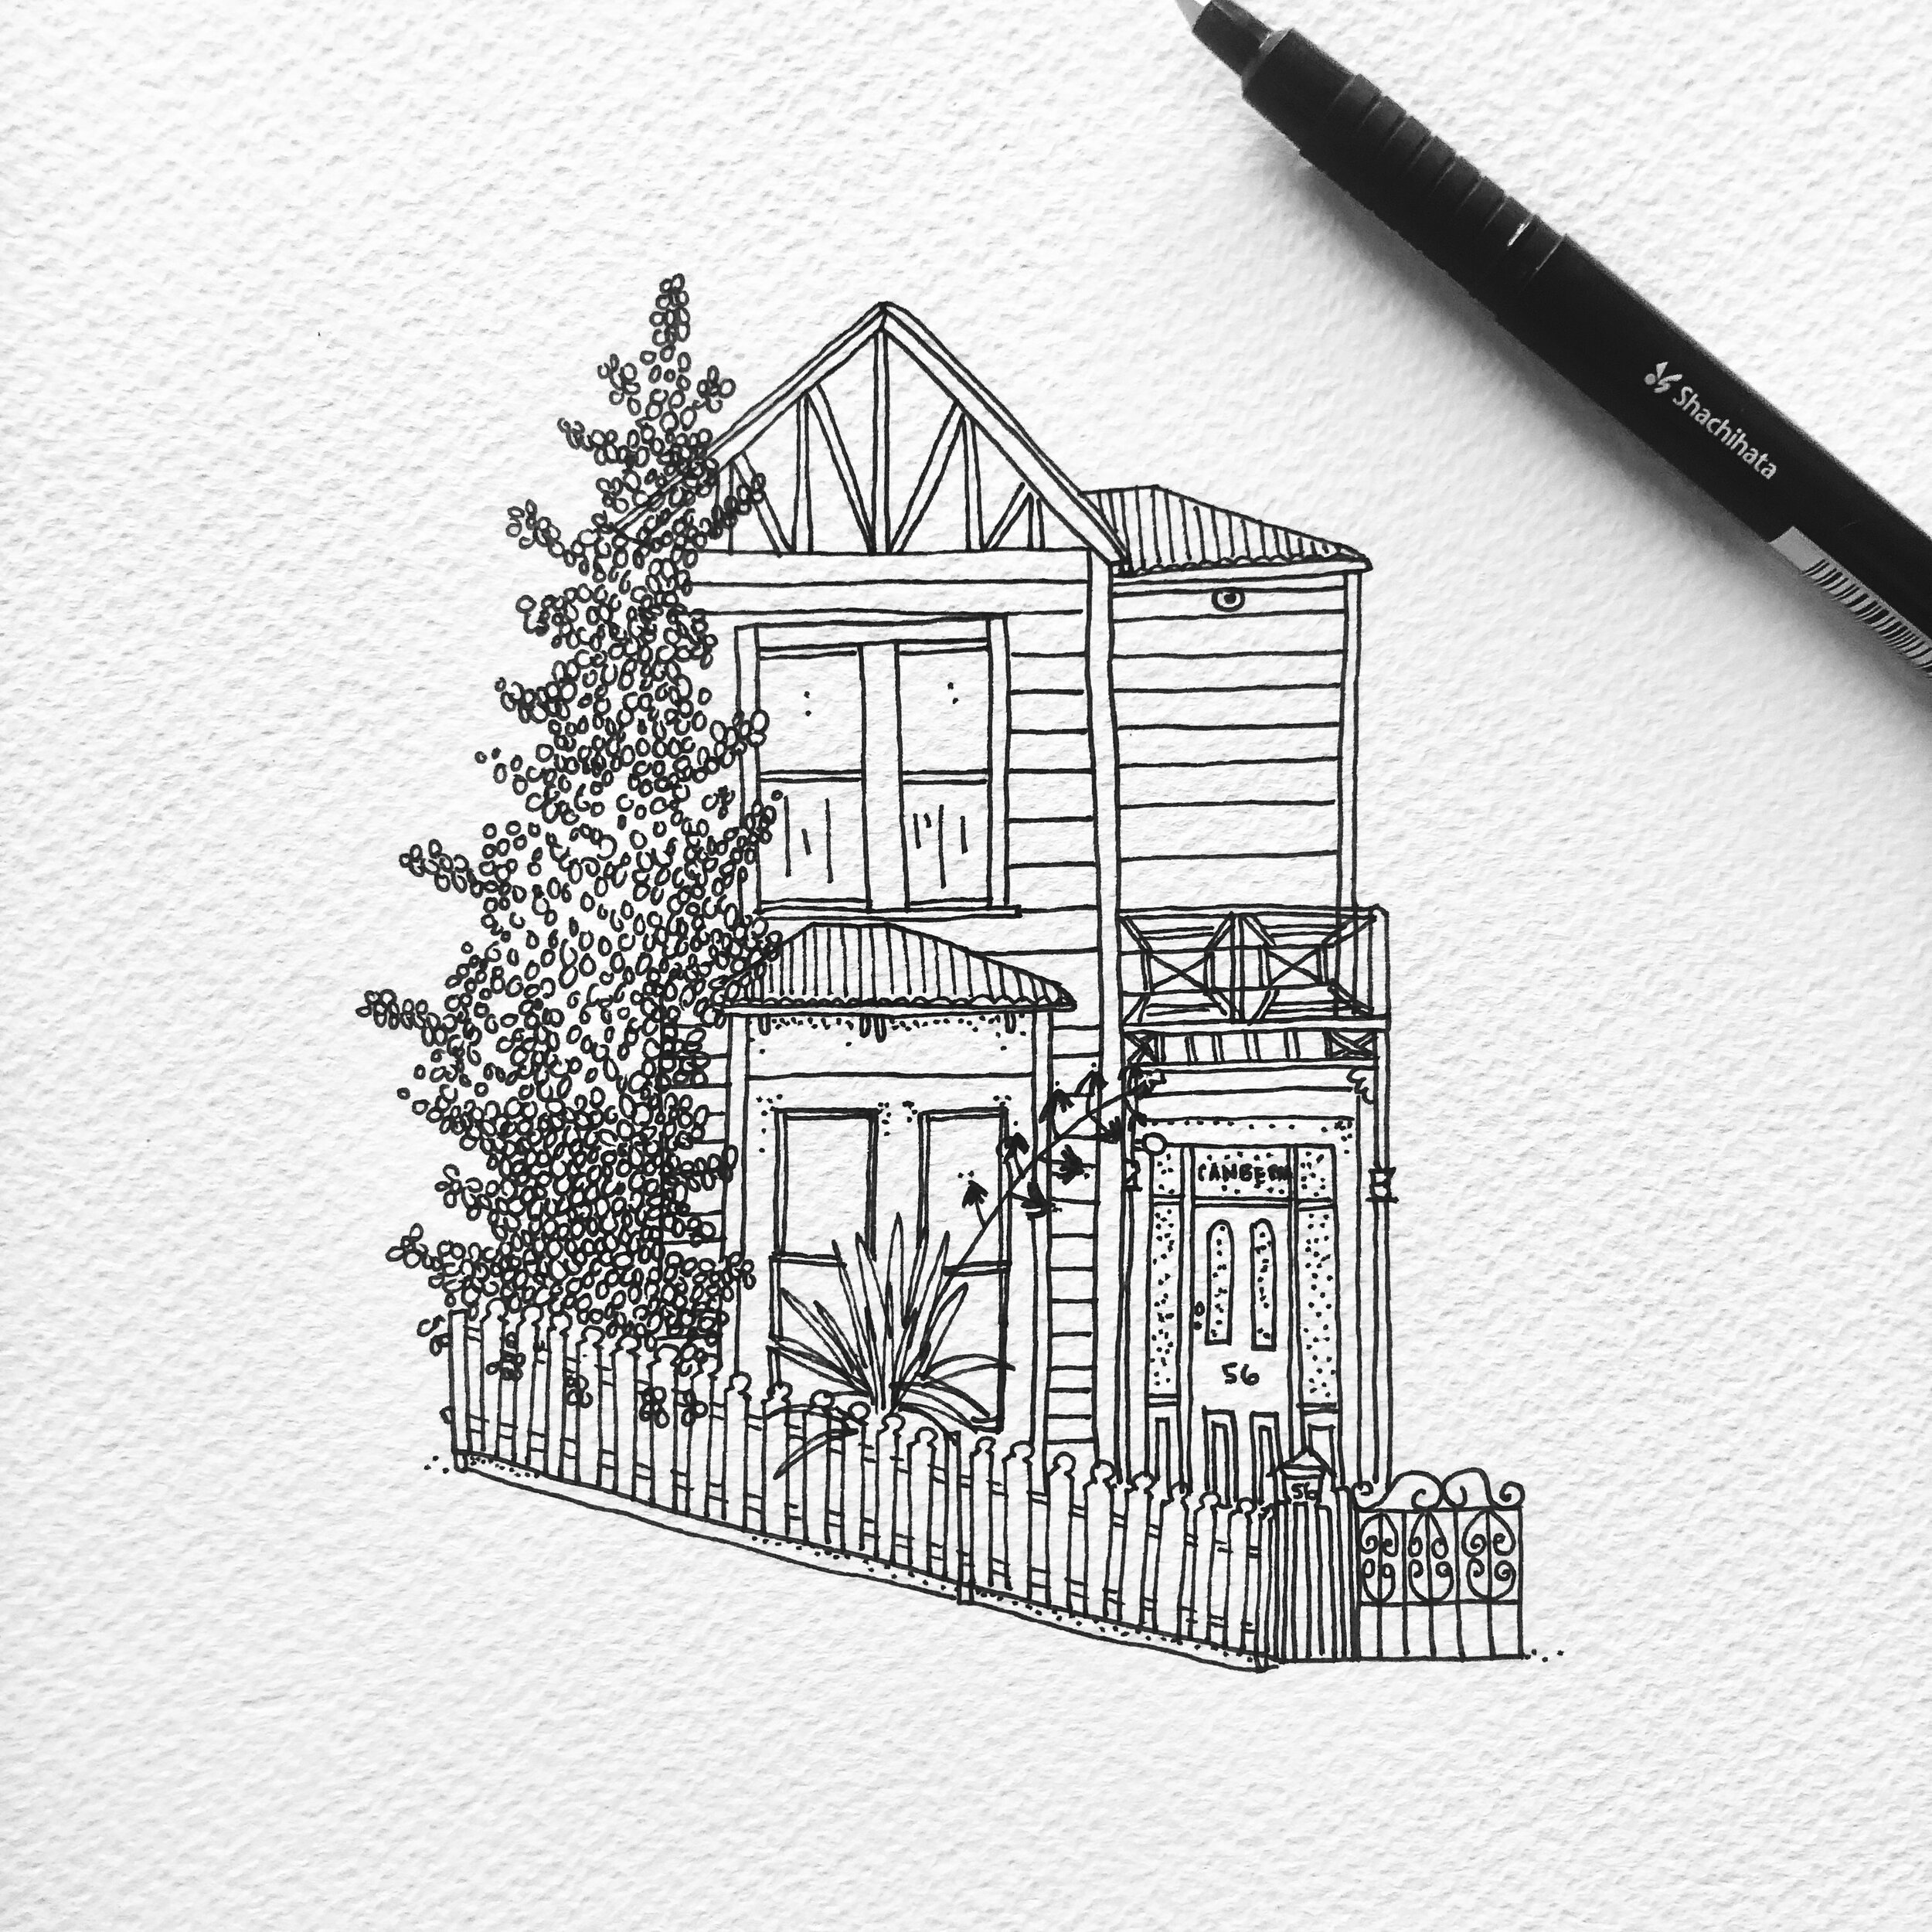 Draw My Home Bespoke Little House Illustrations Georgia Draws A House